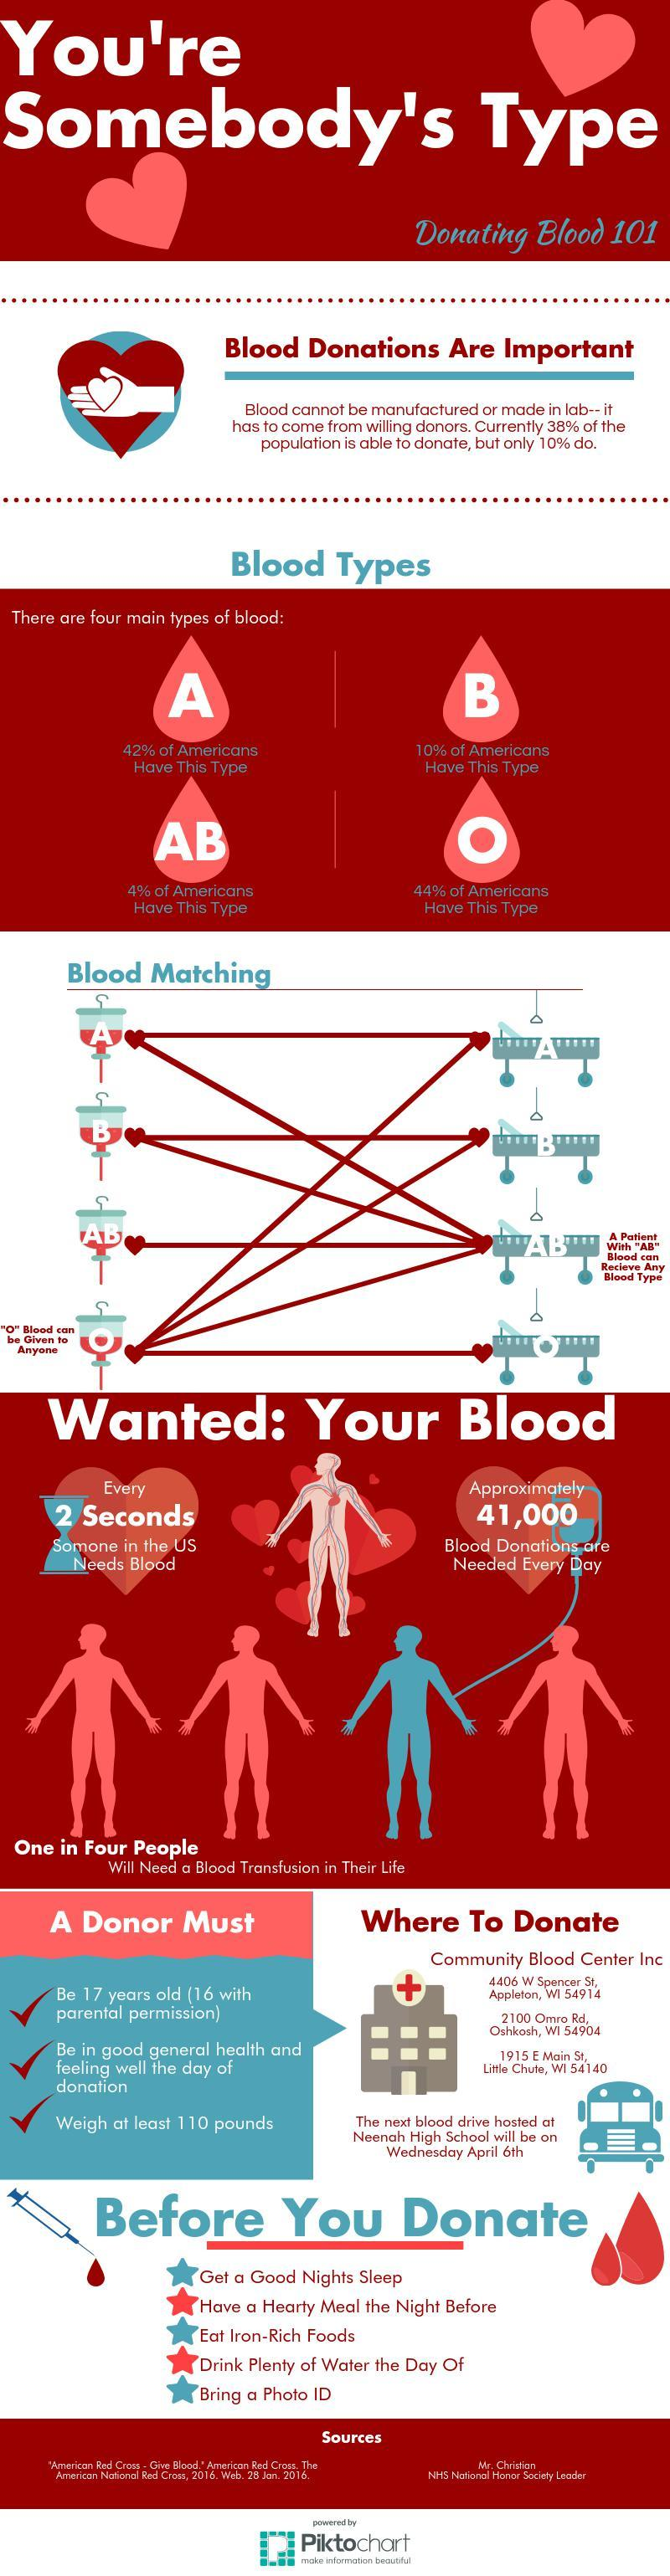 blood-donations